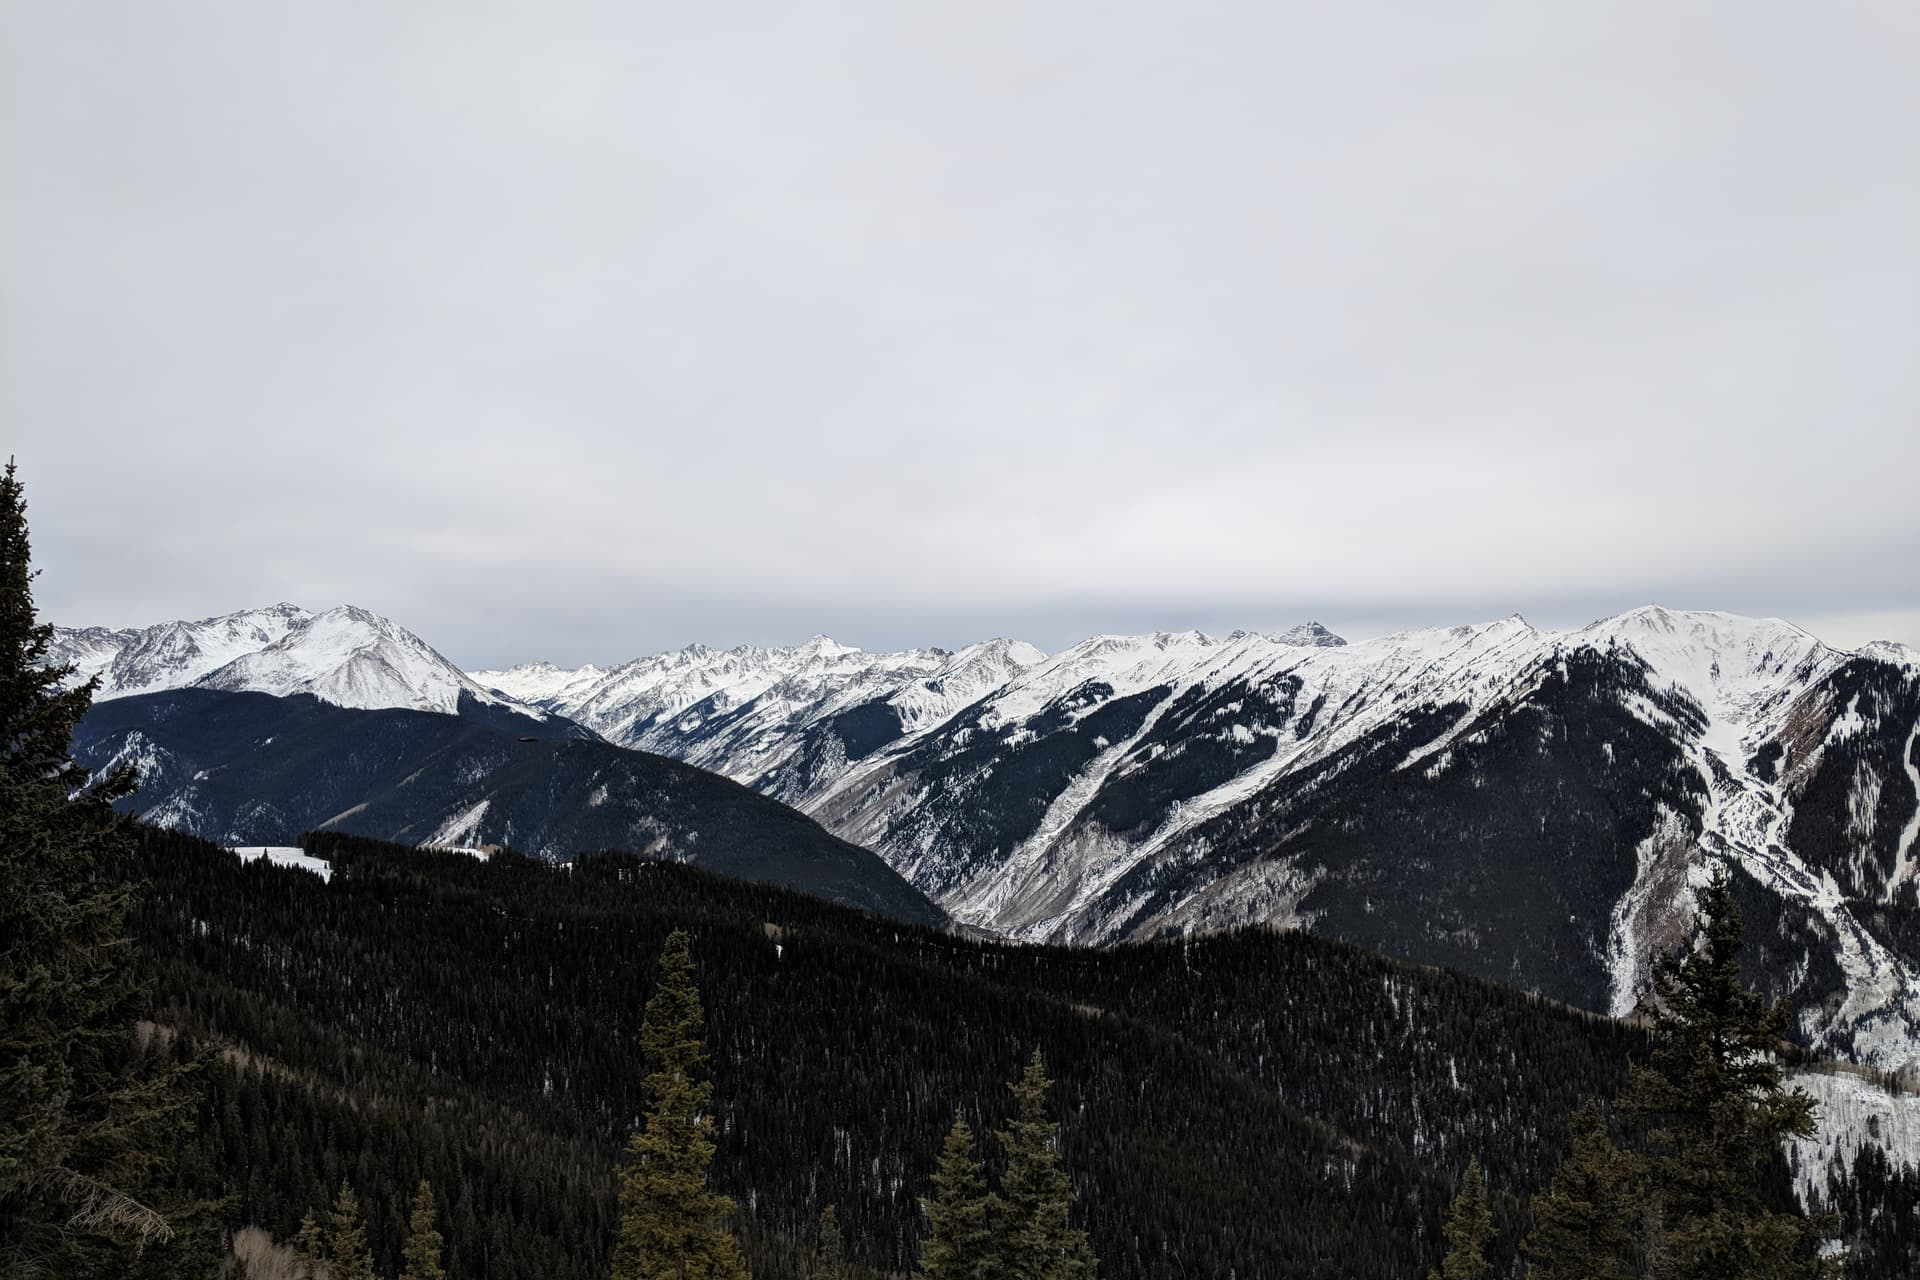 Snow-capped mountains border a steep valley. The winter sky is cold and gray.